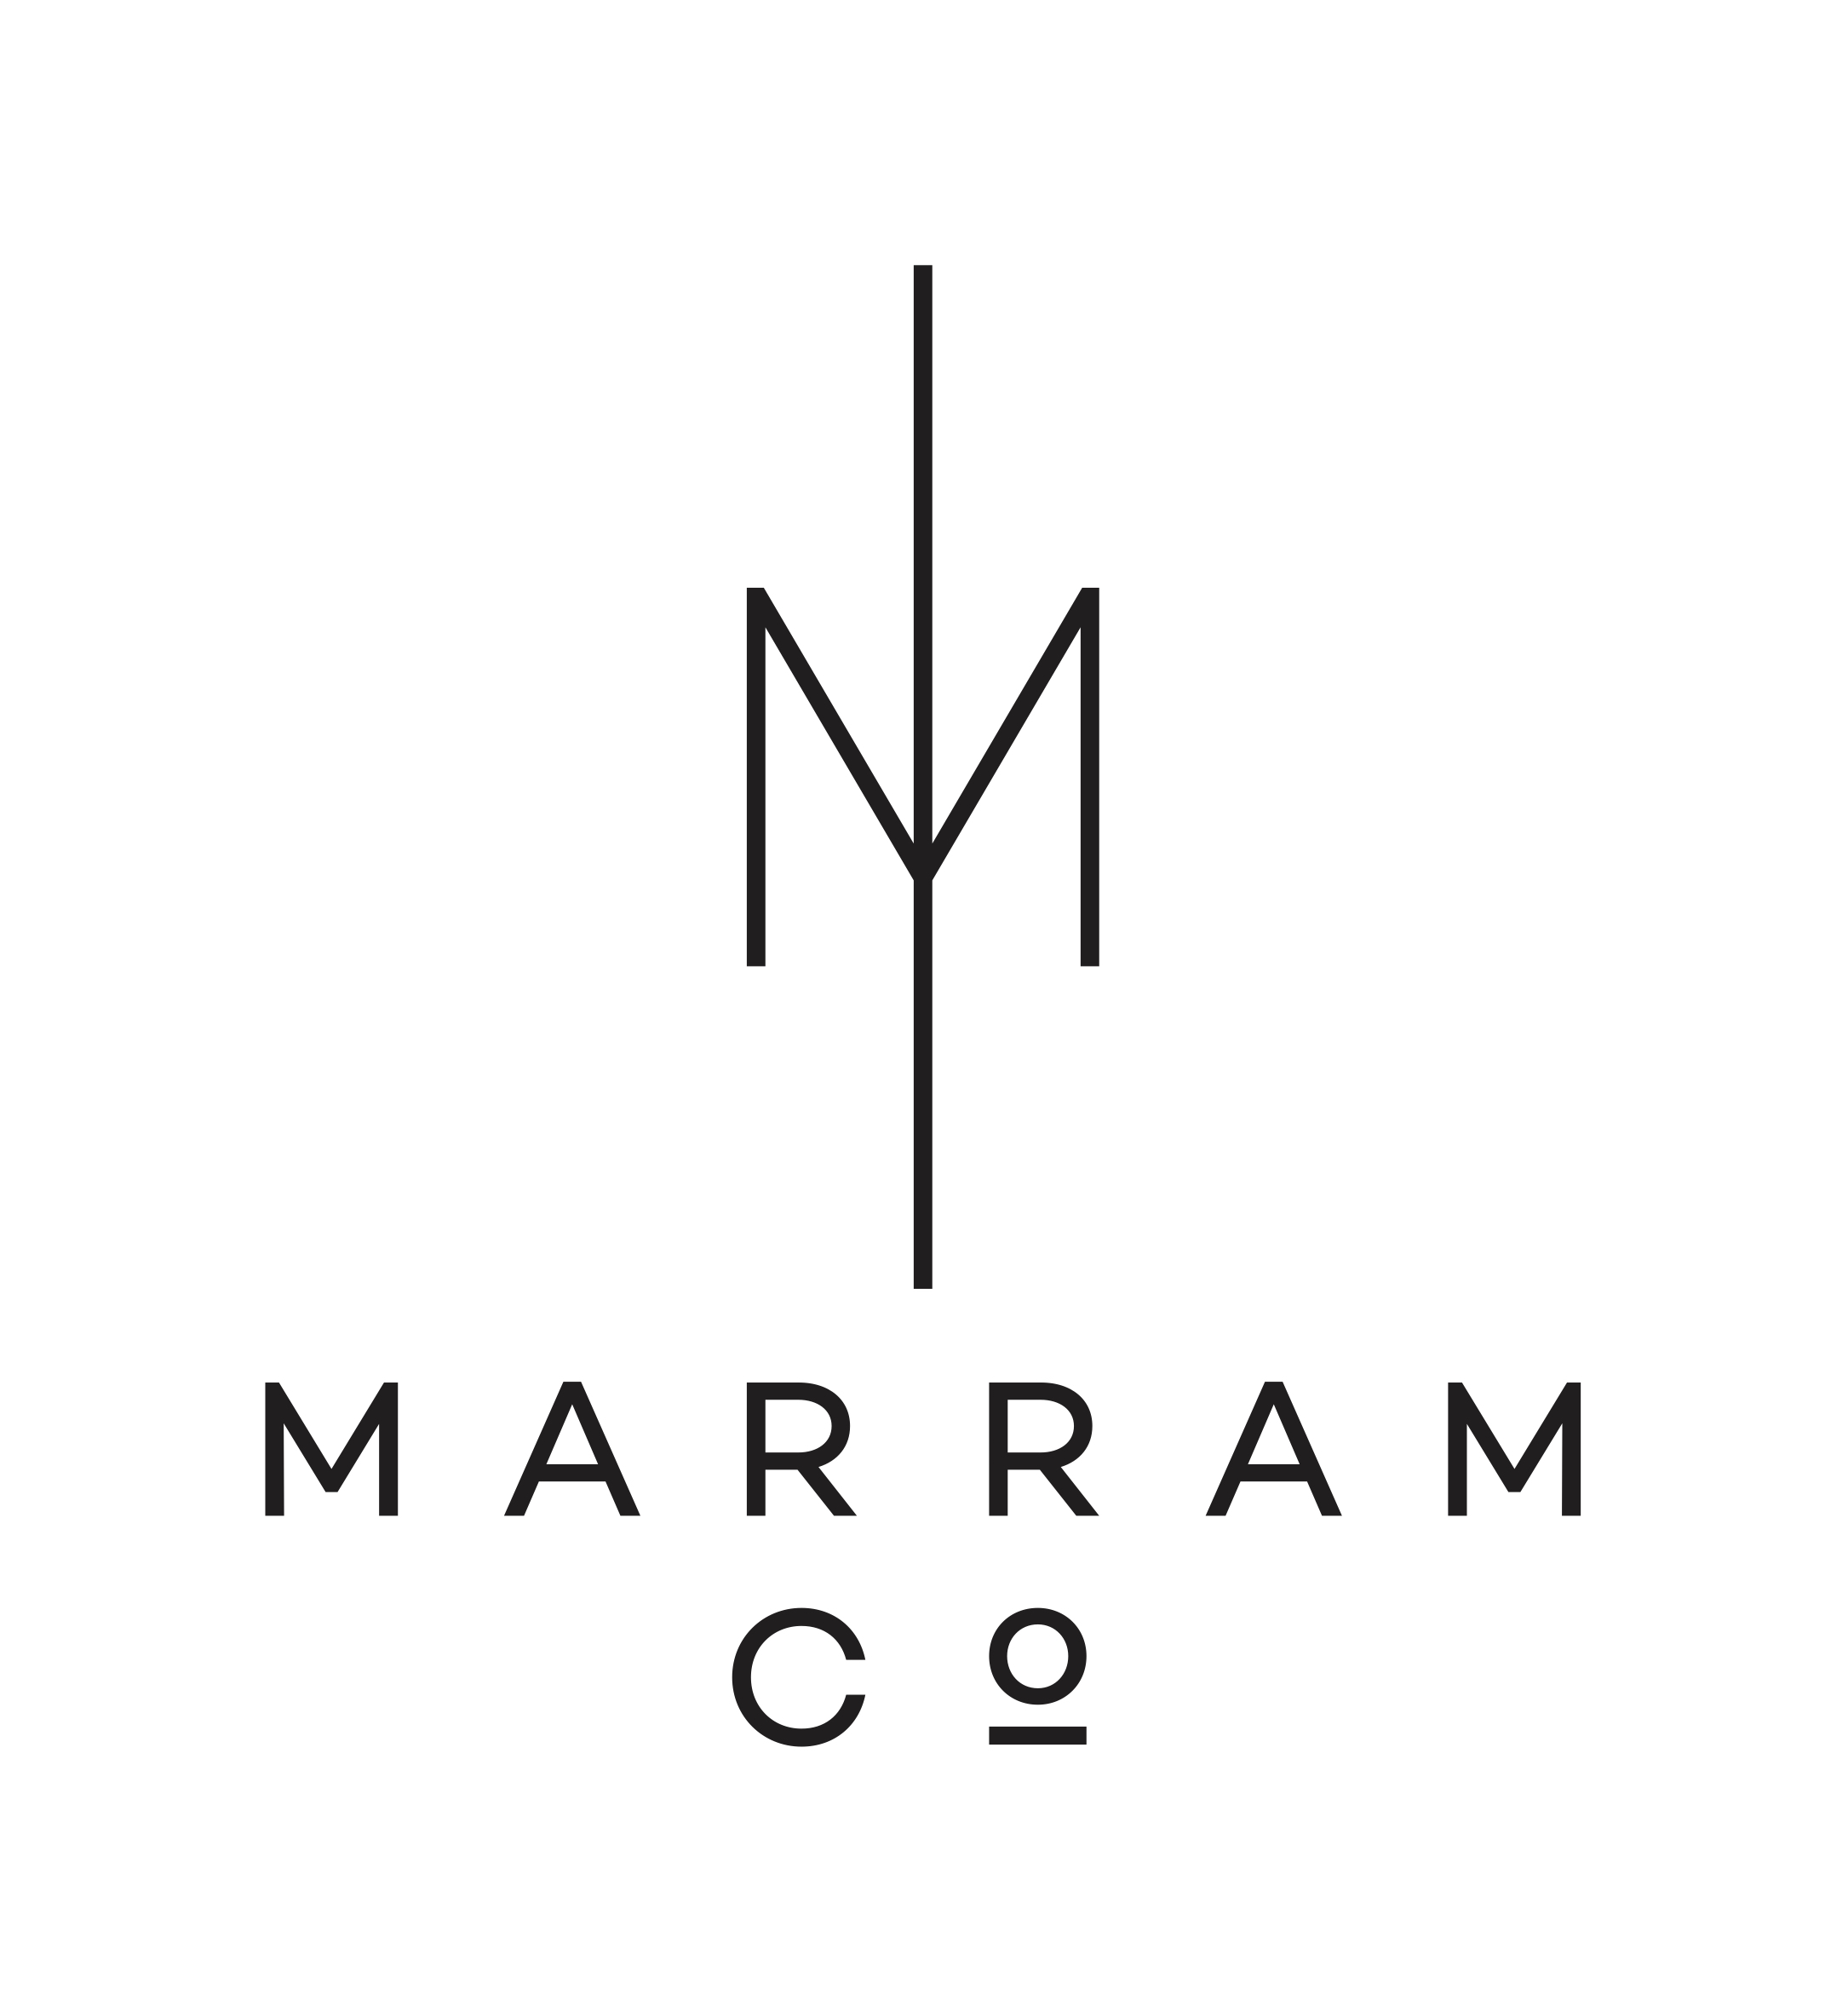 Marram logo.jpg